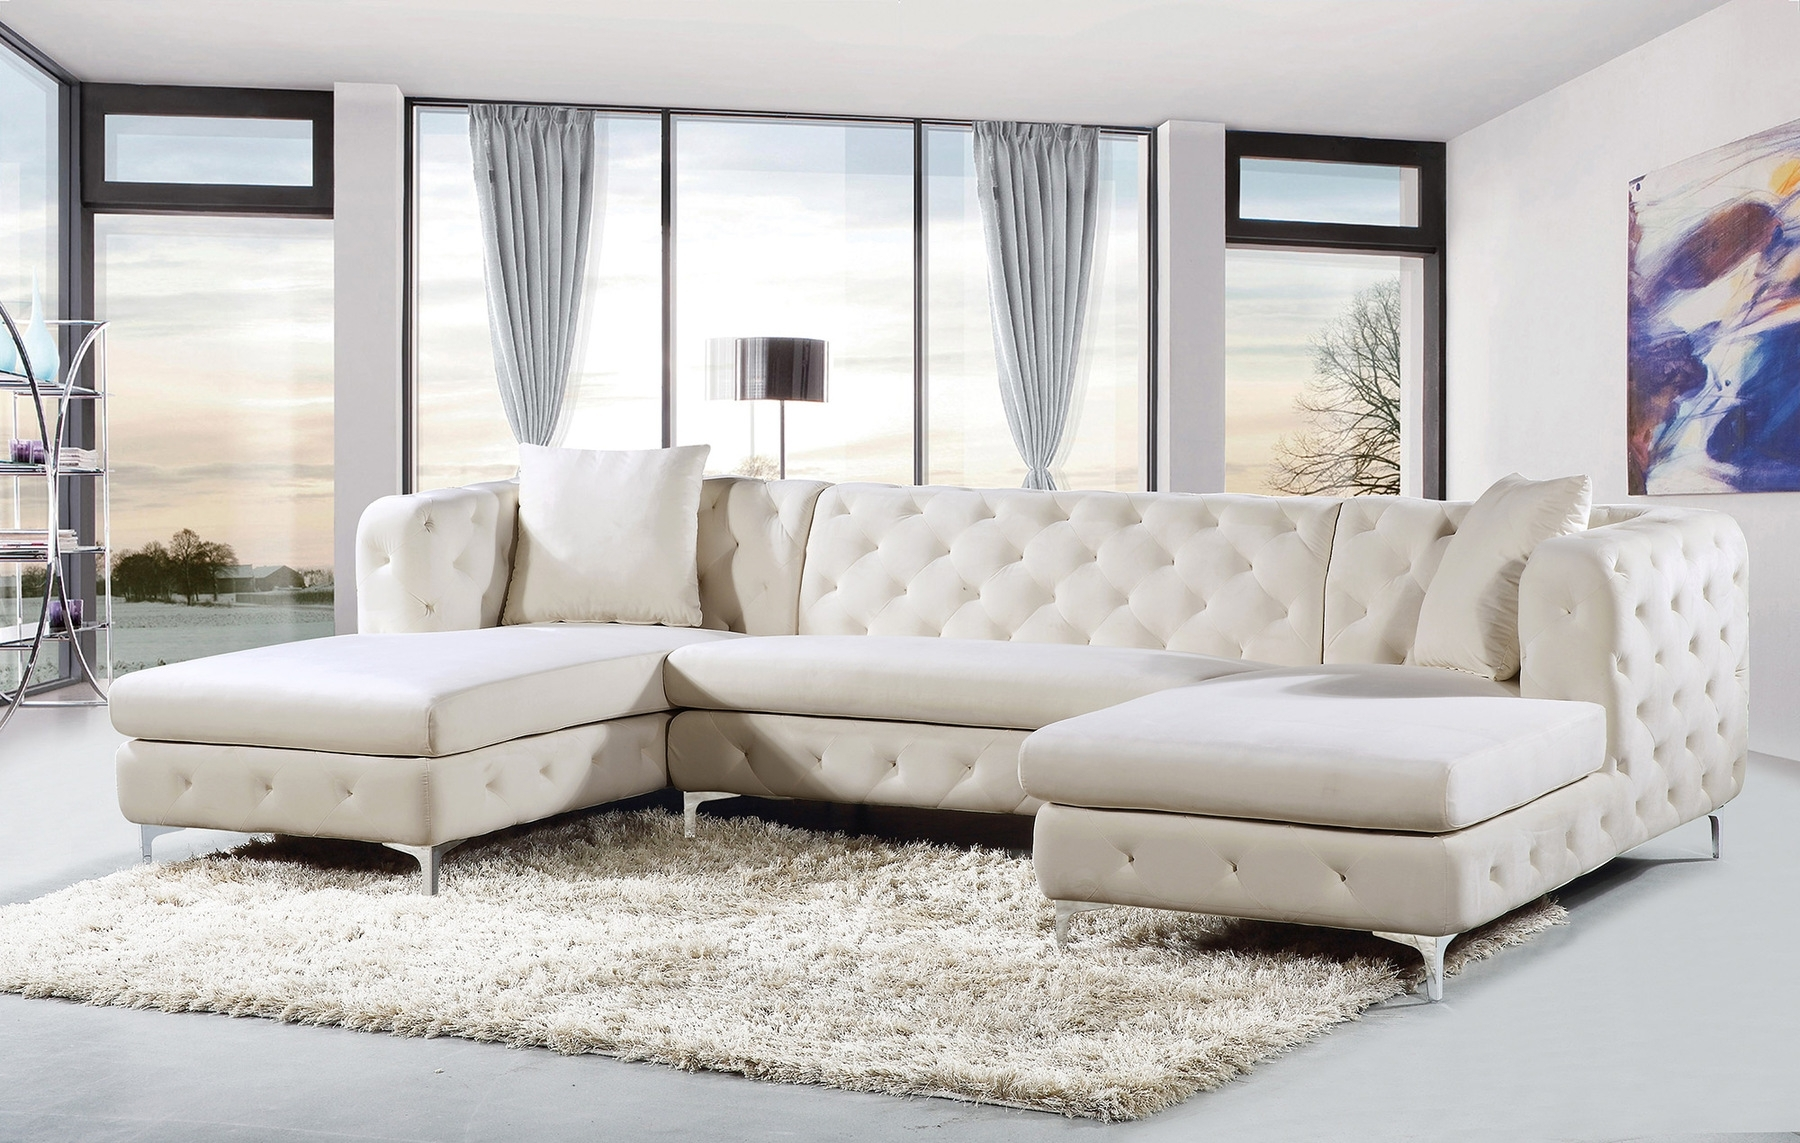 Best And Newest Sectional Sofas, Microfiber Sectional Sofas At Comfyco, Modern With Modern Microfiber Sectional Sofas (View 2 of 20)